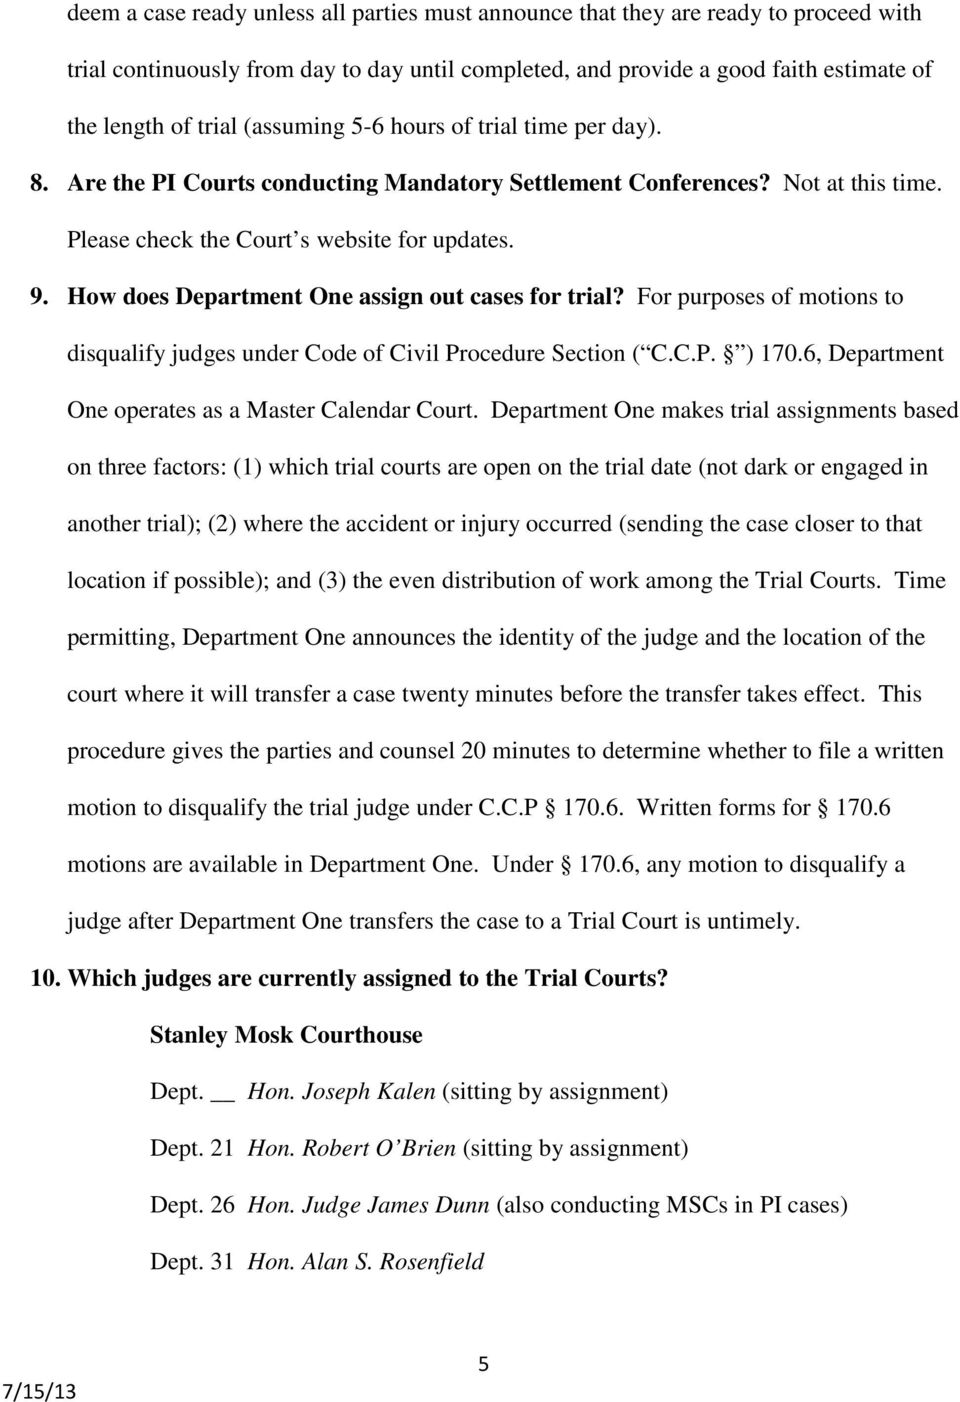 How does Department One assign out cases for trial? For purposes of motions to disqualify judges under Code of Civil Procedure Section ( C.C.P. ) 170.